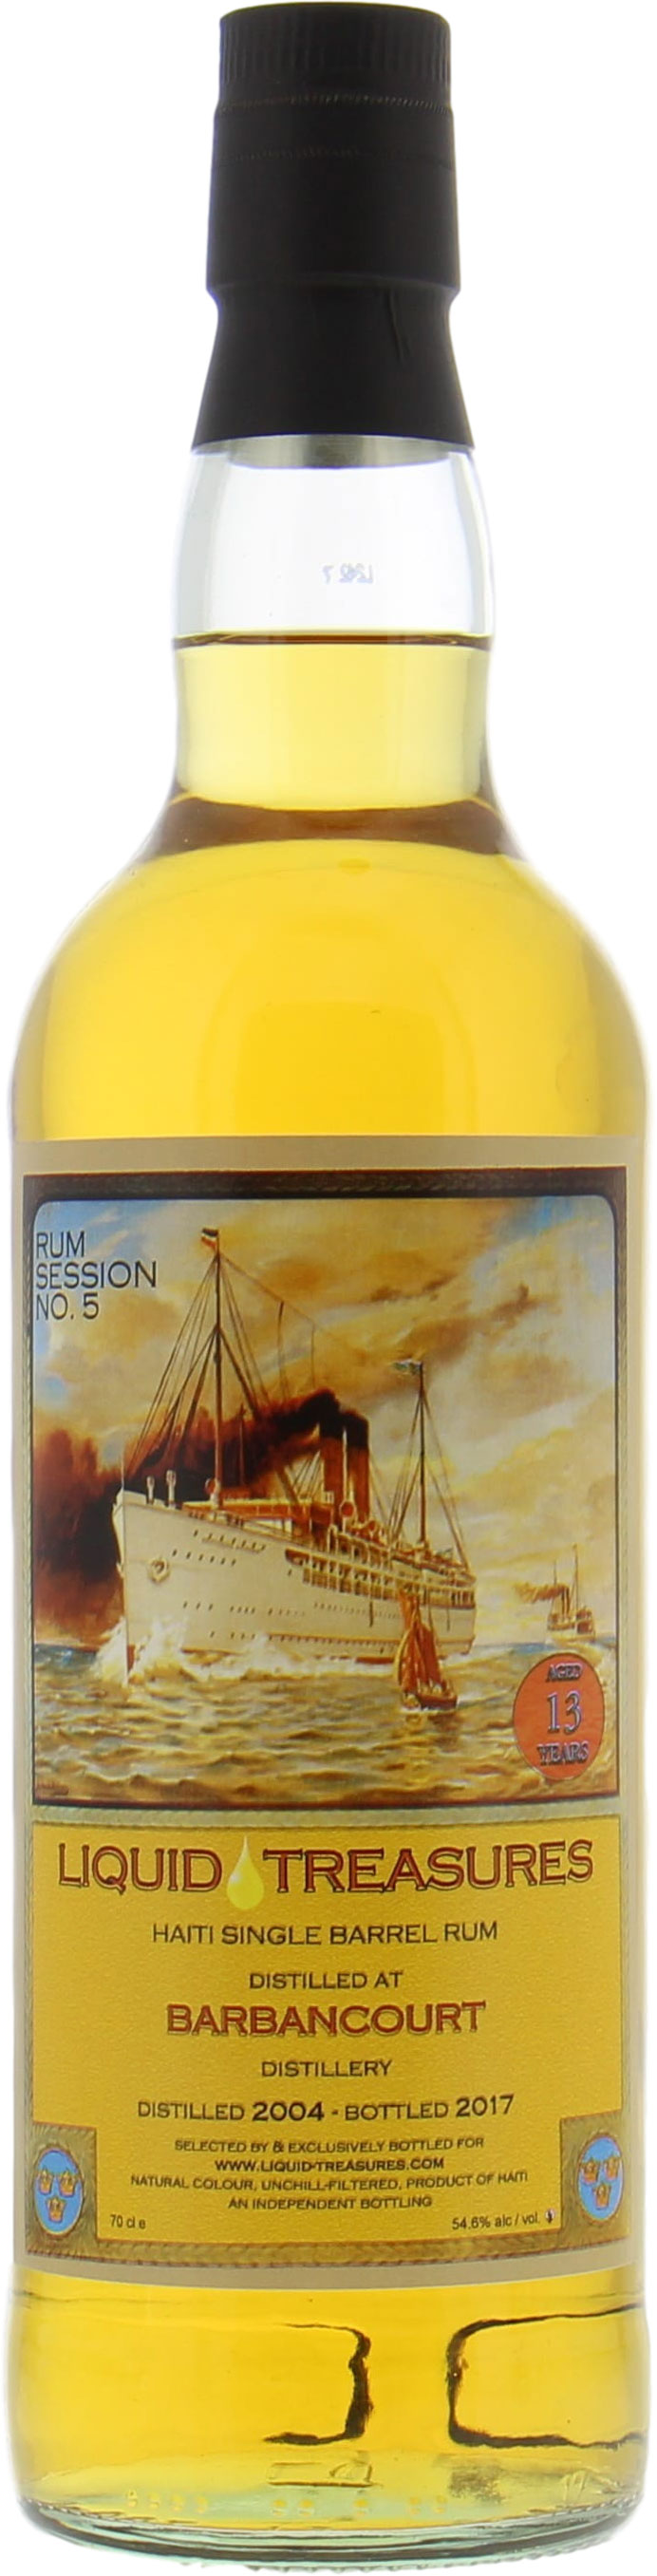 Barbancourt - 13 Years Old Liquid Treasures Rum Session 5 54.6 2004